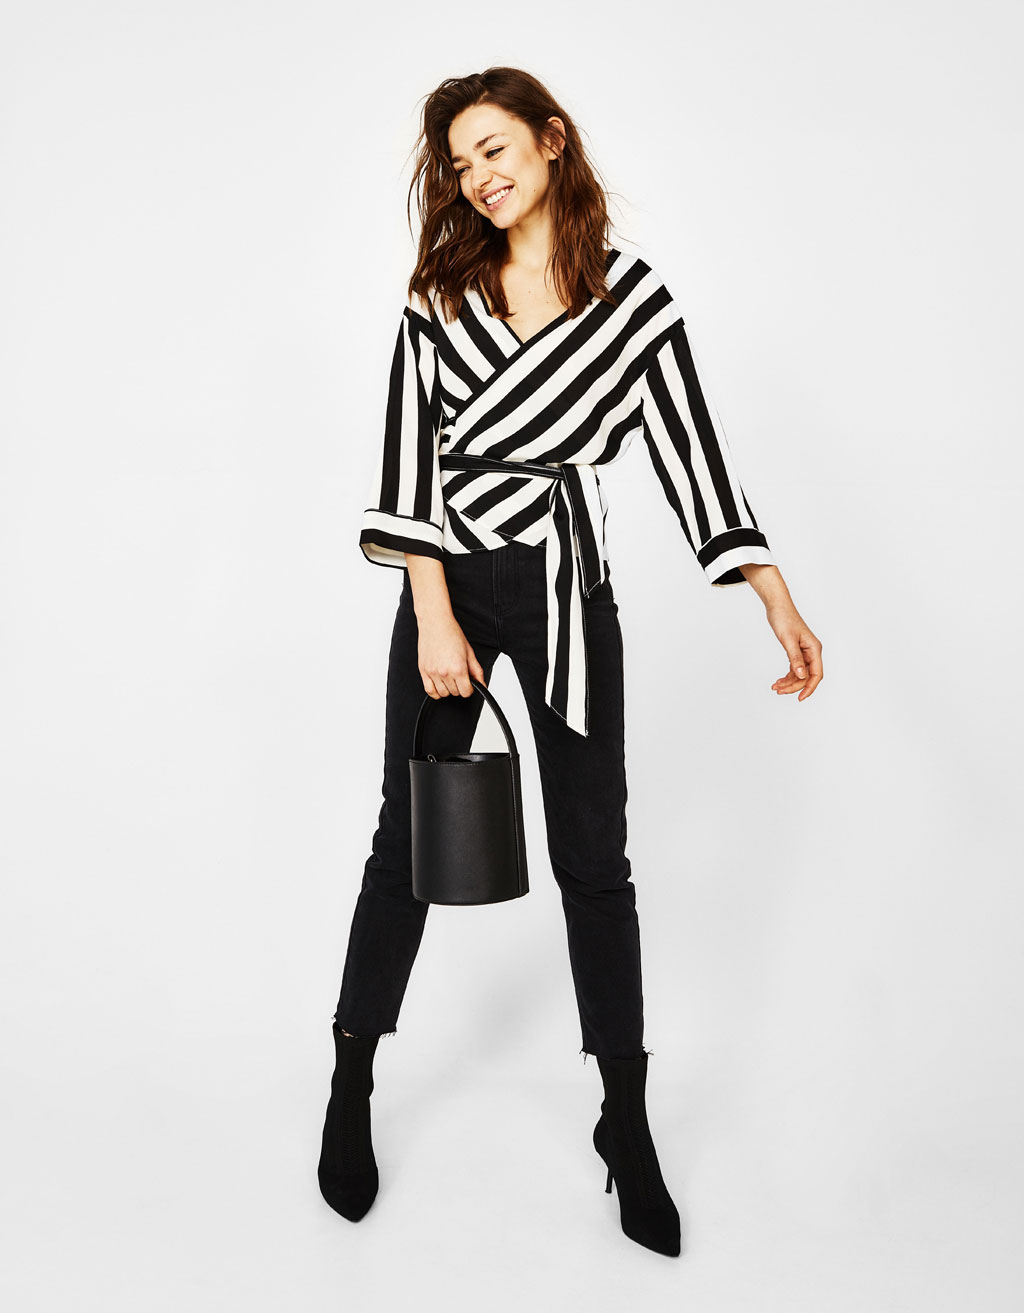 Striped blouse with crossover neckline